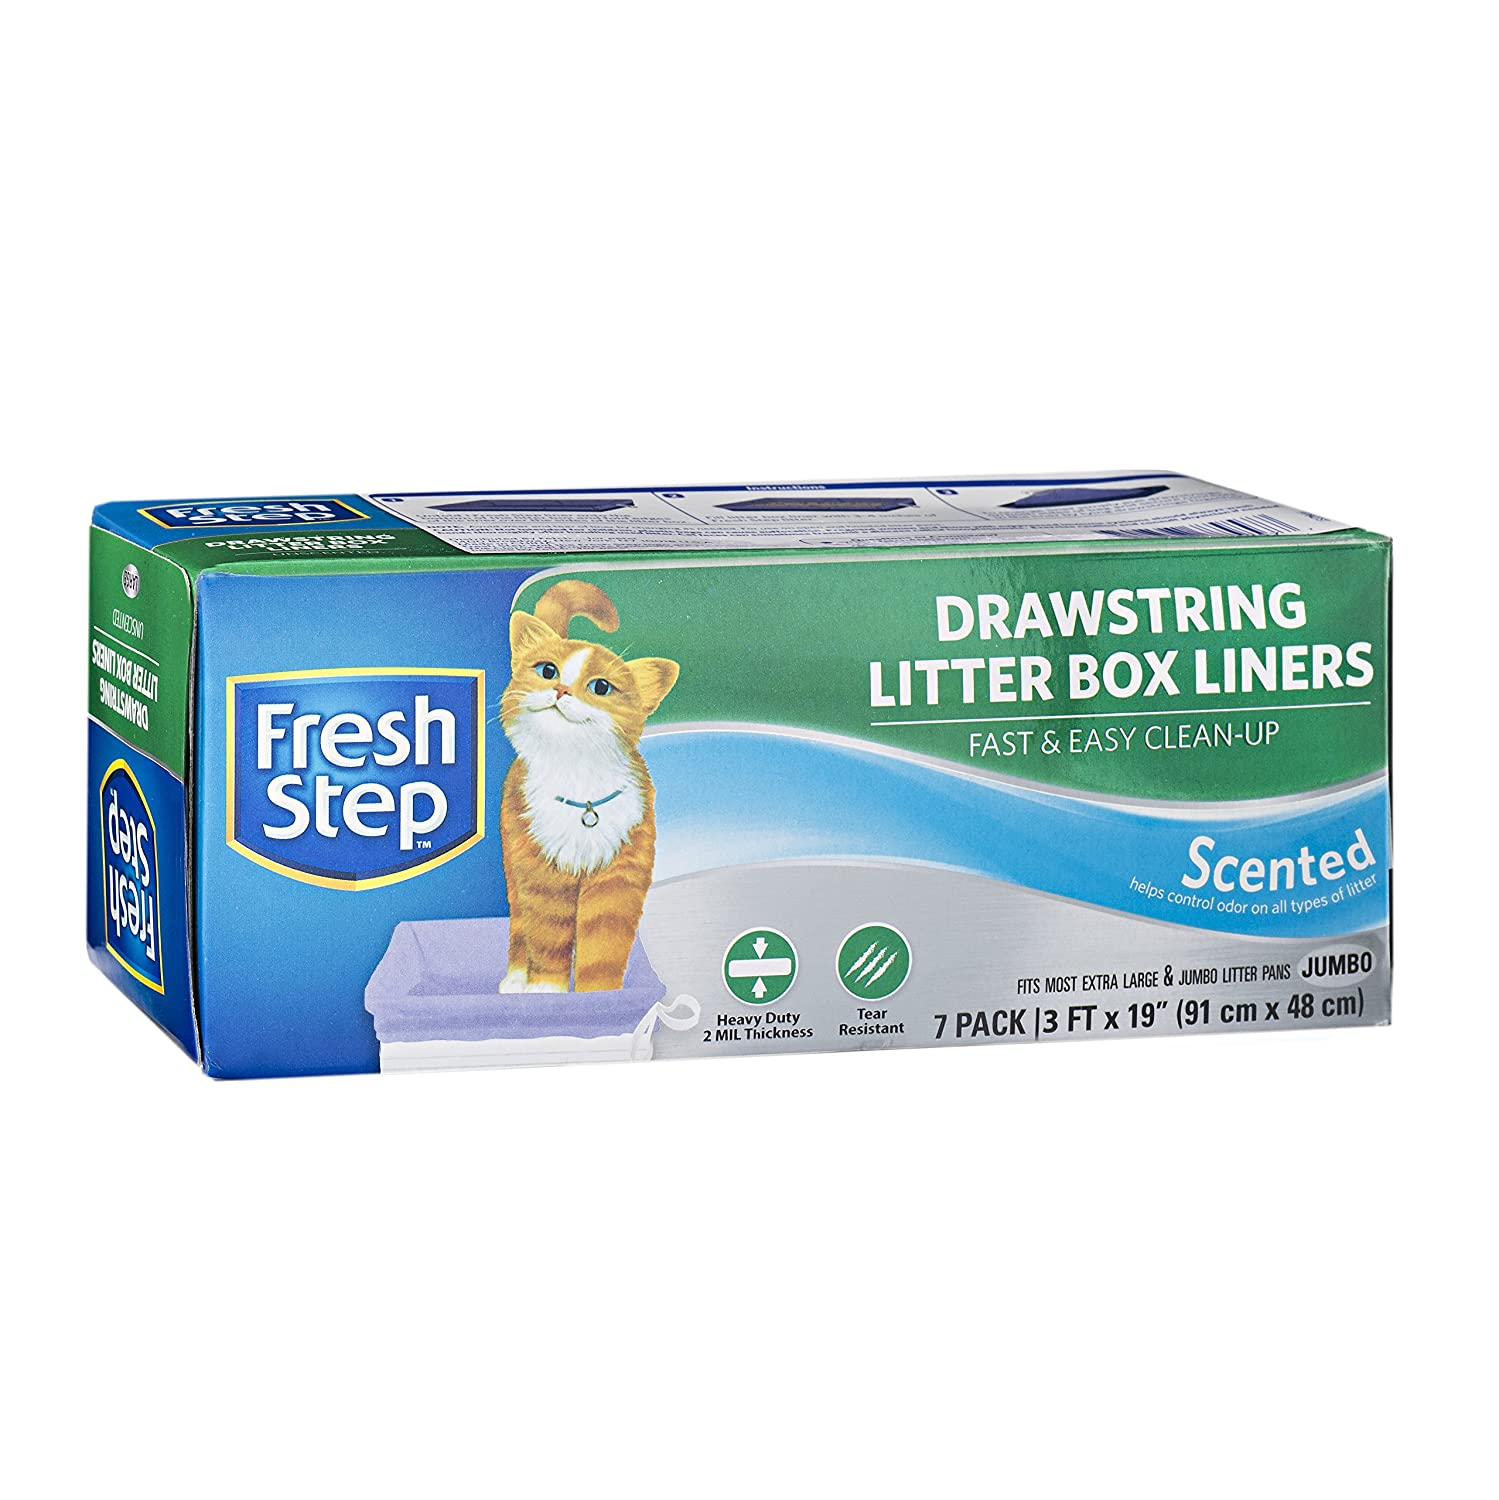 Fresh Step Drawstring Litter Box Liners | Quick Easy Cleanup